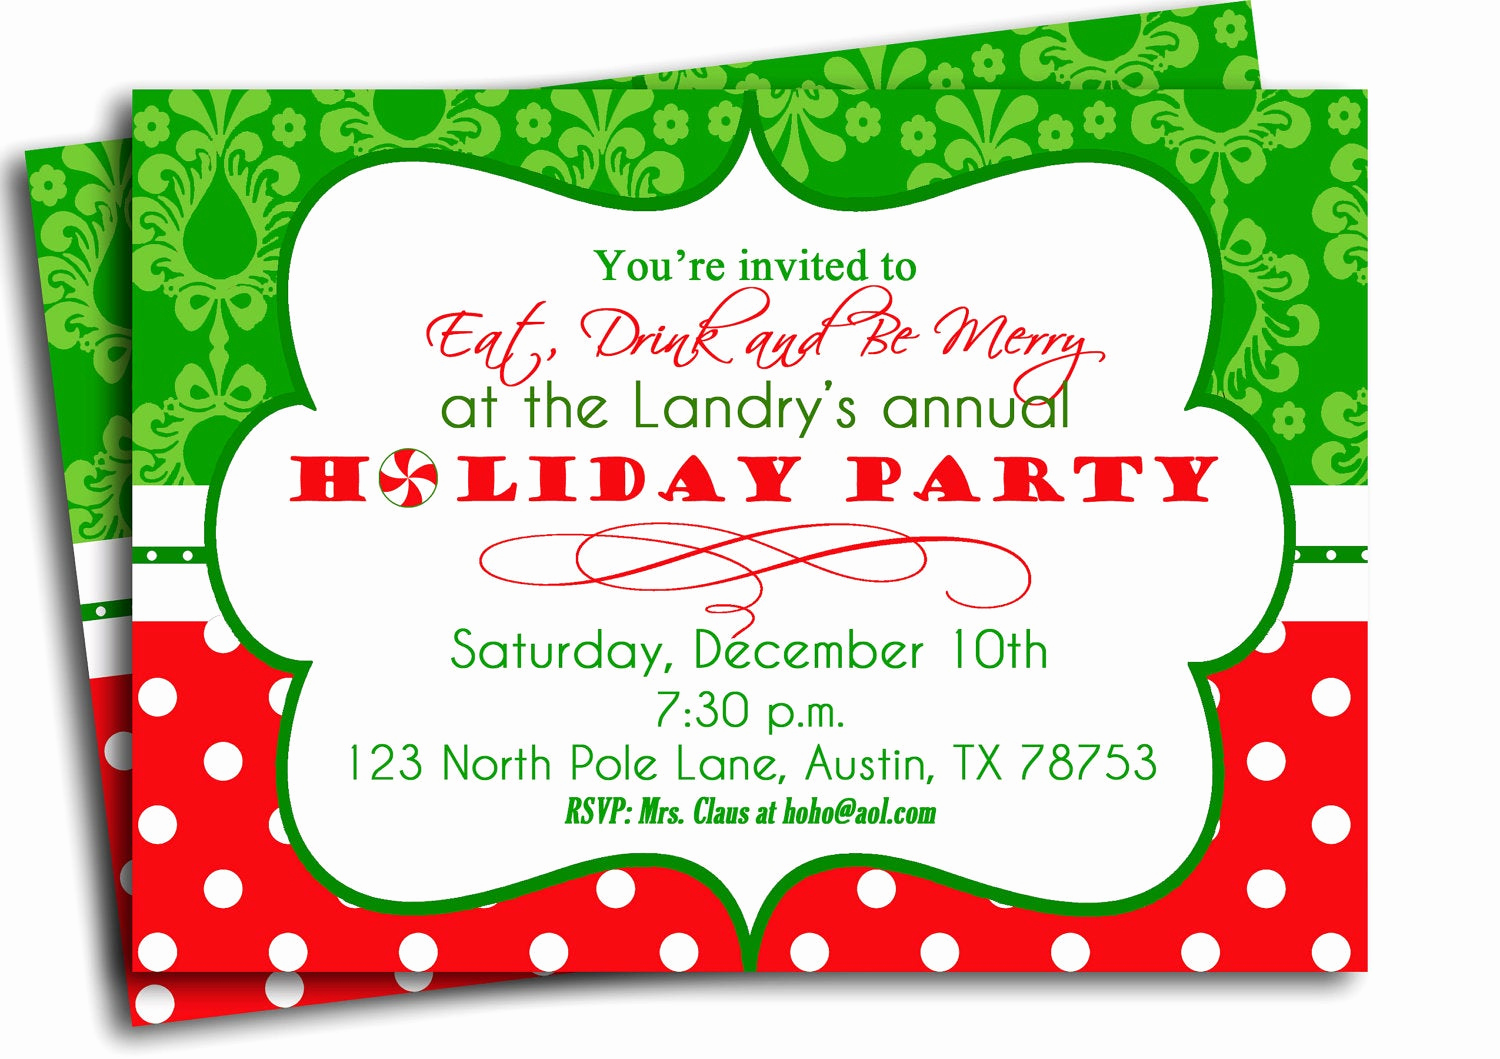 Free Christmas Party Invitations Template Luxury Christmas Party Invitation Printable Traditional Holiday